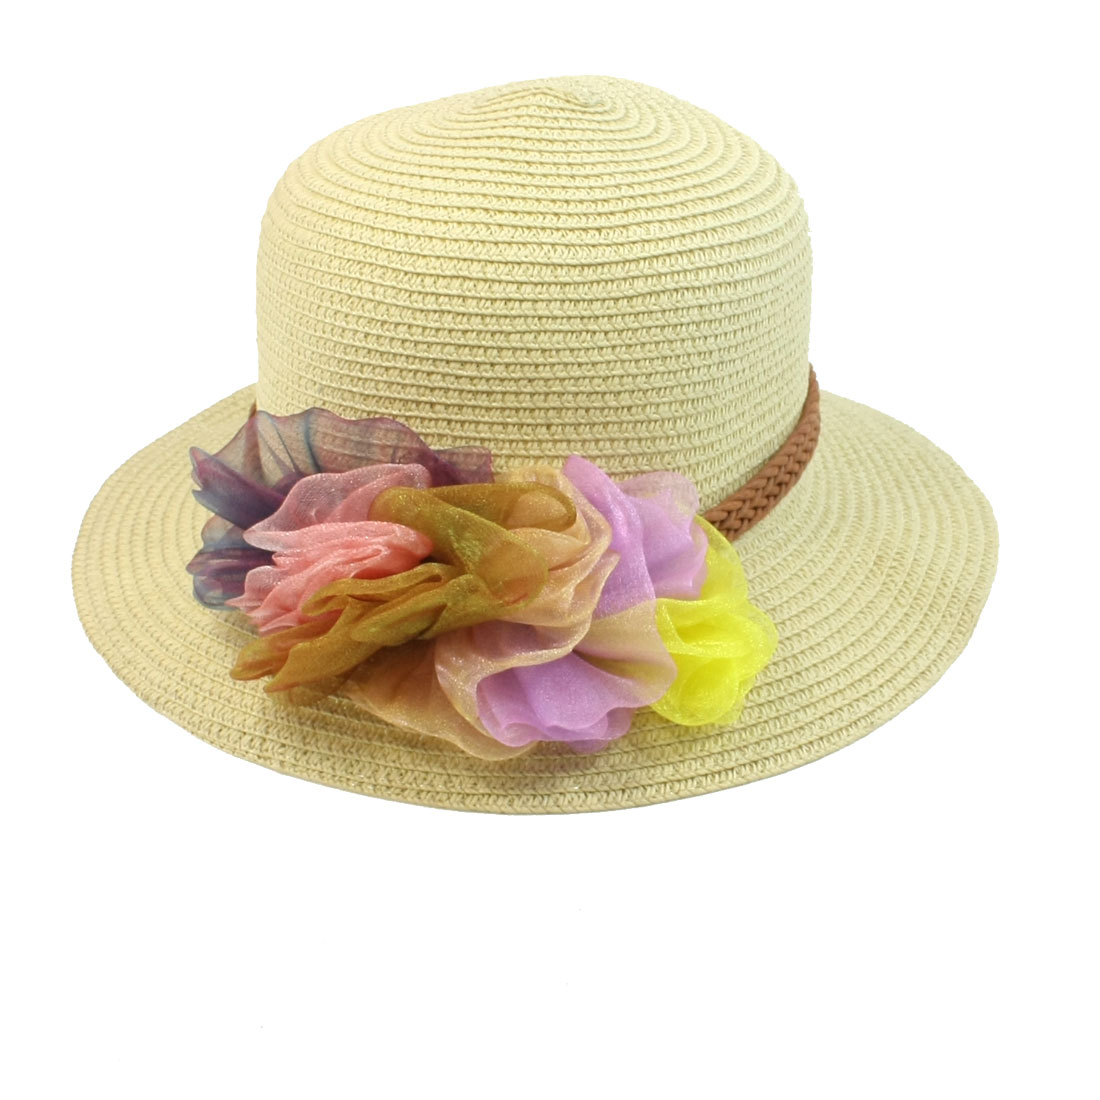 Summer Colorful Chiffon Floral Decor Straw Braided Hat S Size Beige for Woman